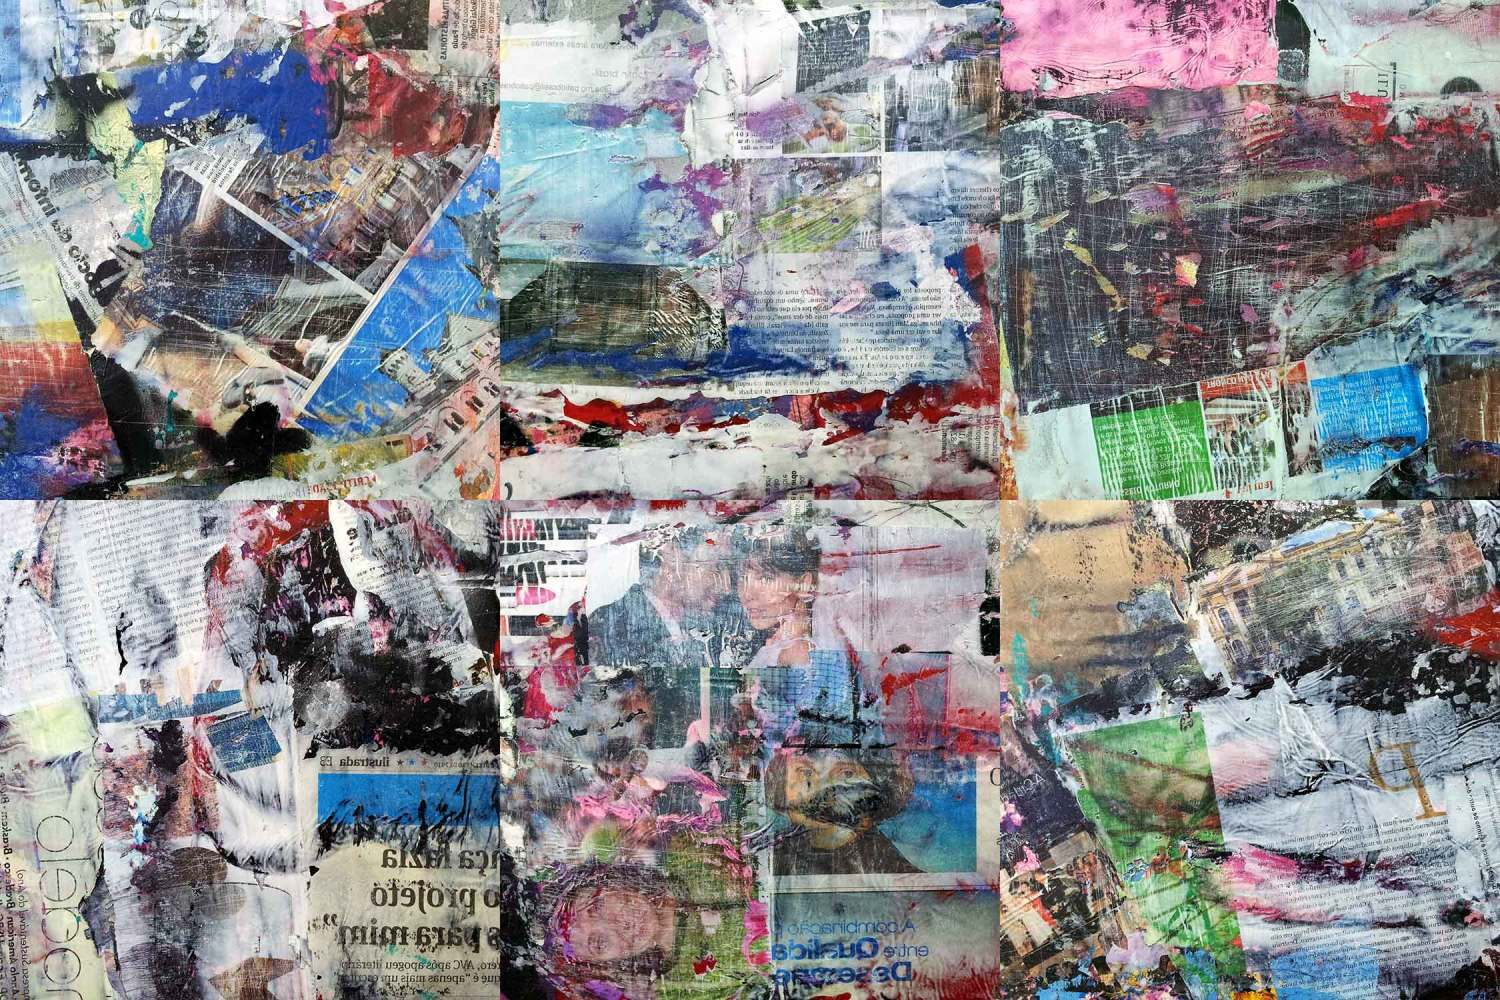 communication breakdown – 26 x 26 cm each (6 parts) - acrylic and mixed media collage on canvas mounted on wood boxes - 2012